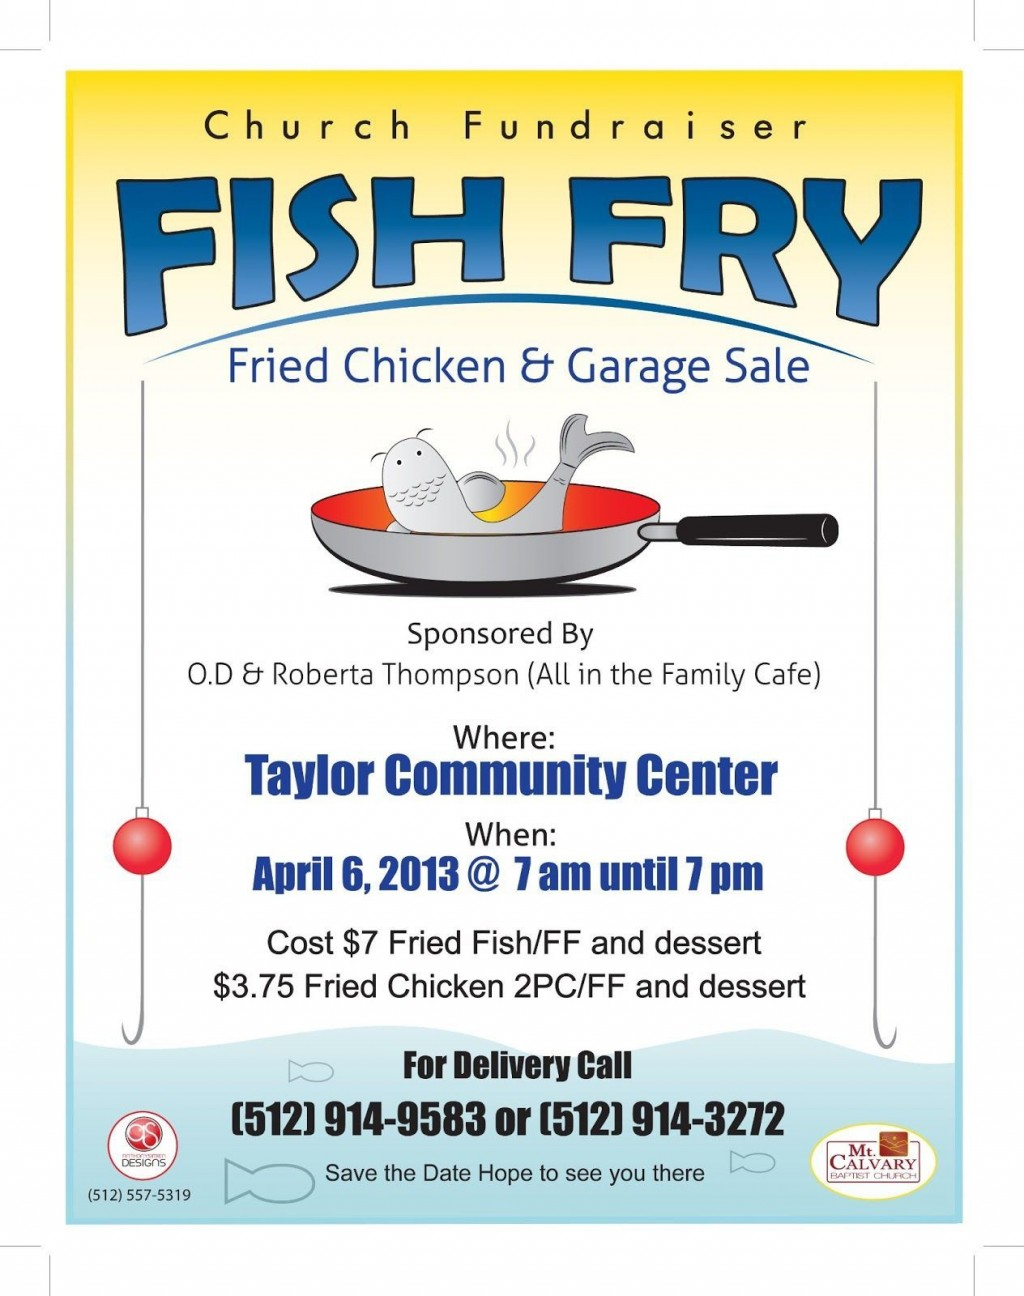 007 Fascinating Fish Fry Flyer Template Design  Printable Free Powerpoint PsdLarge